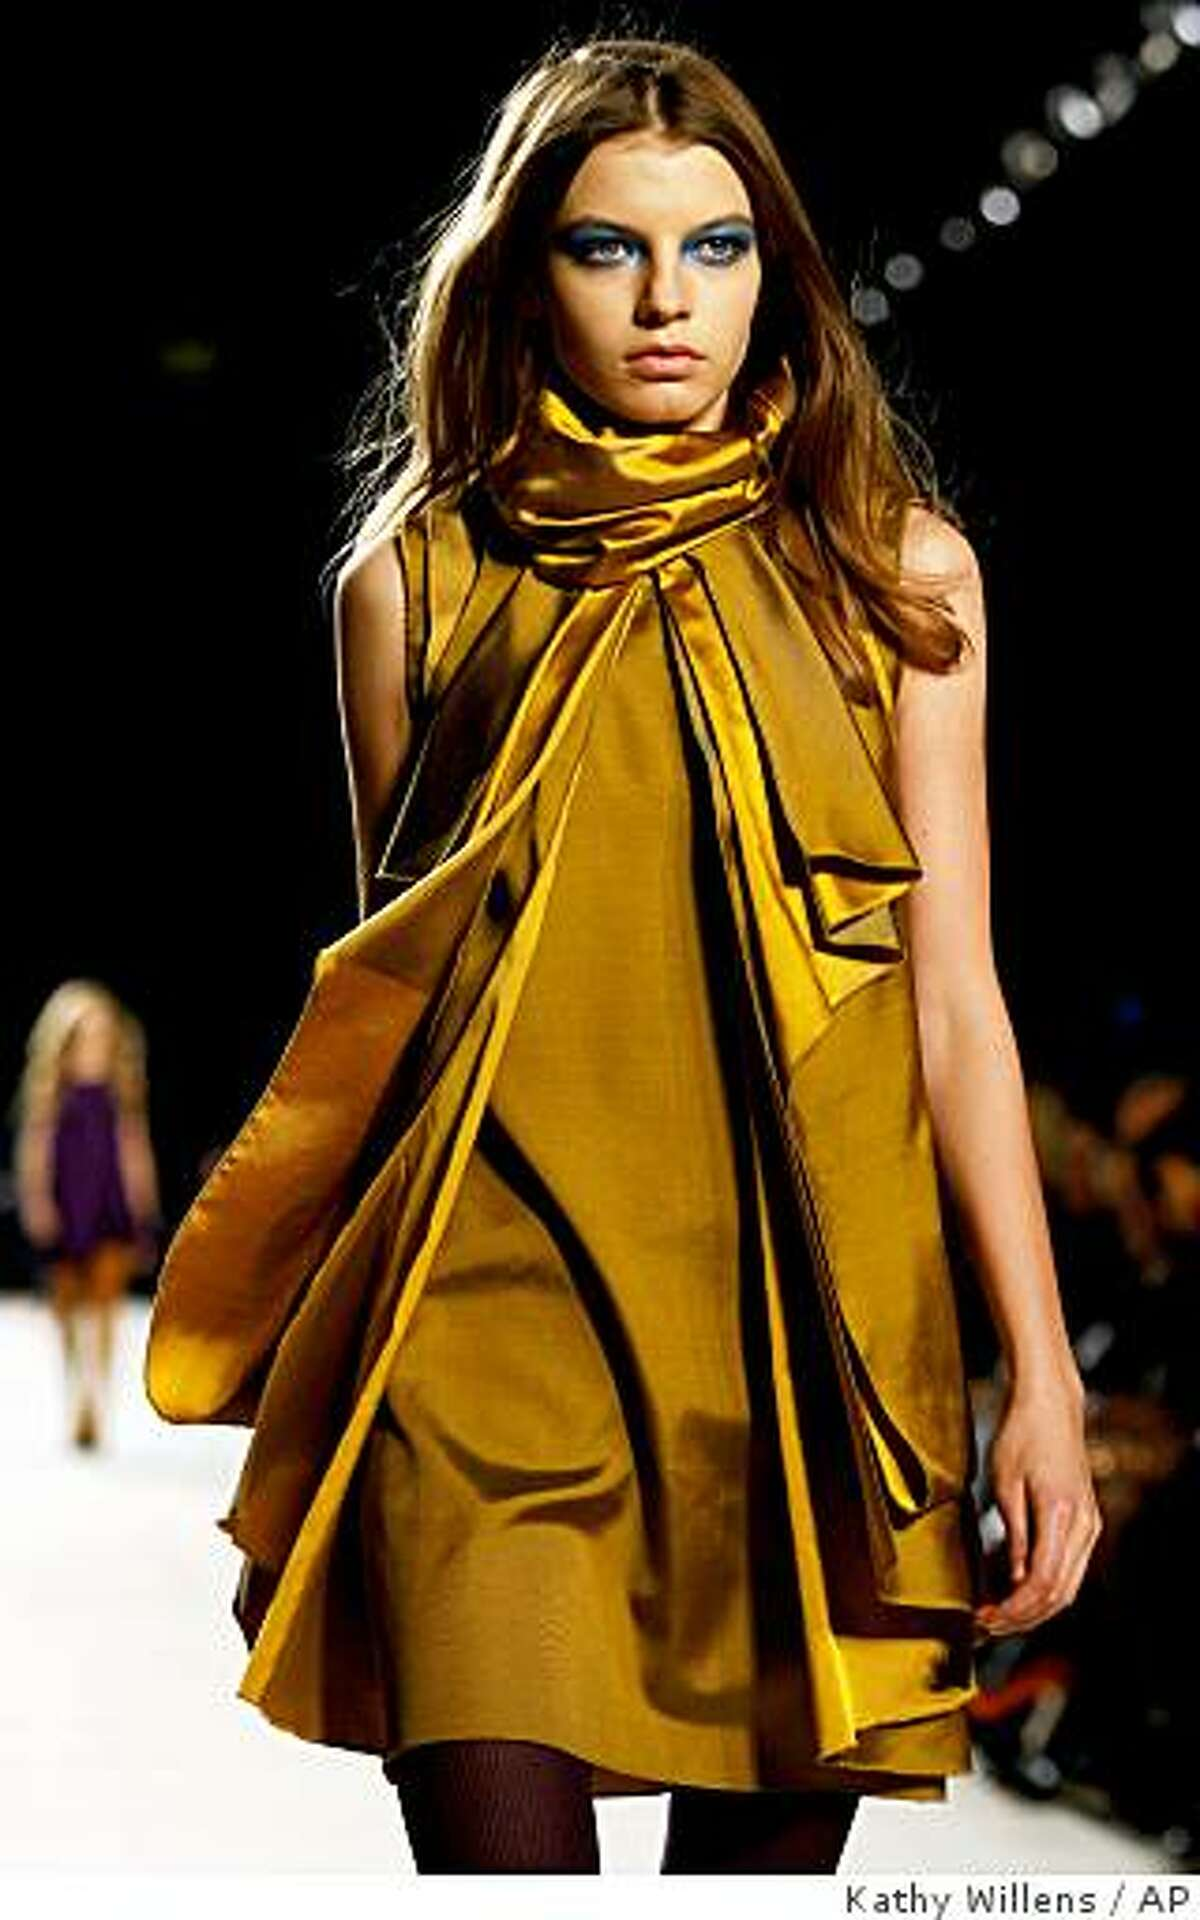 **FILE** A model walks the runway during the presentation of Proenza Schouler's Fall 2008 collection in New York in this Monday, Feb. 4, 2008 file photo. Mustard yellow, as seen here, is among the muted colors common at Fall Fashion Week. (AP Photo/Kathy Willens, FILE)